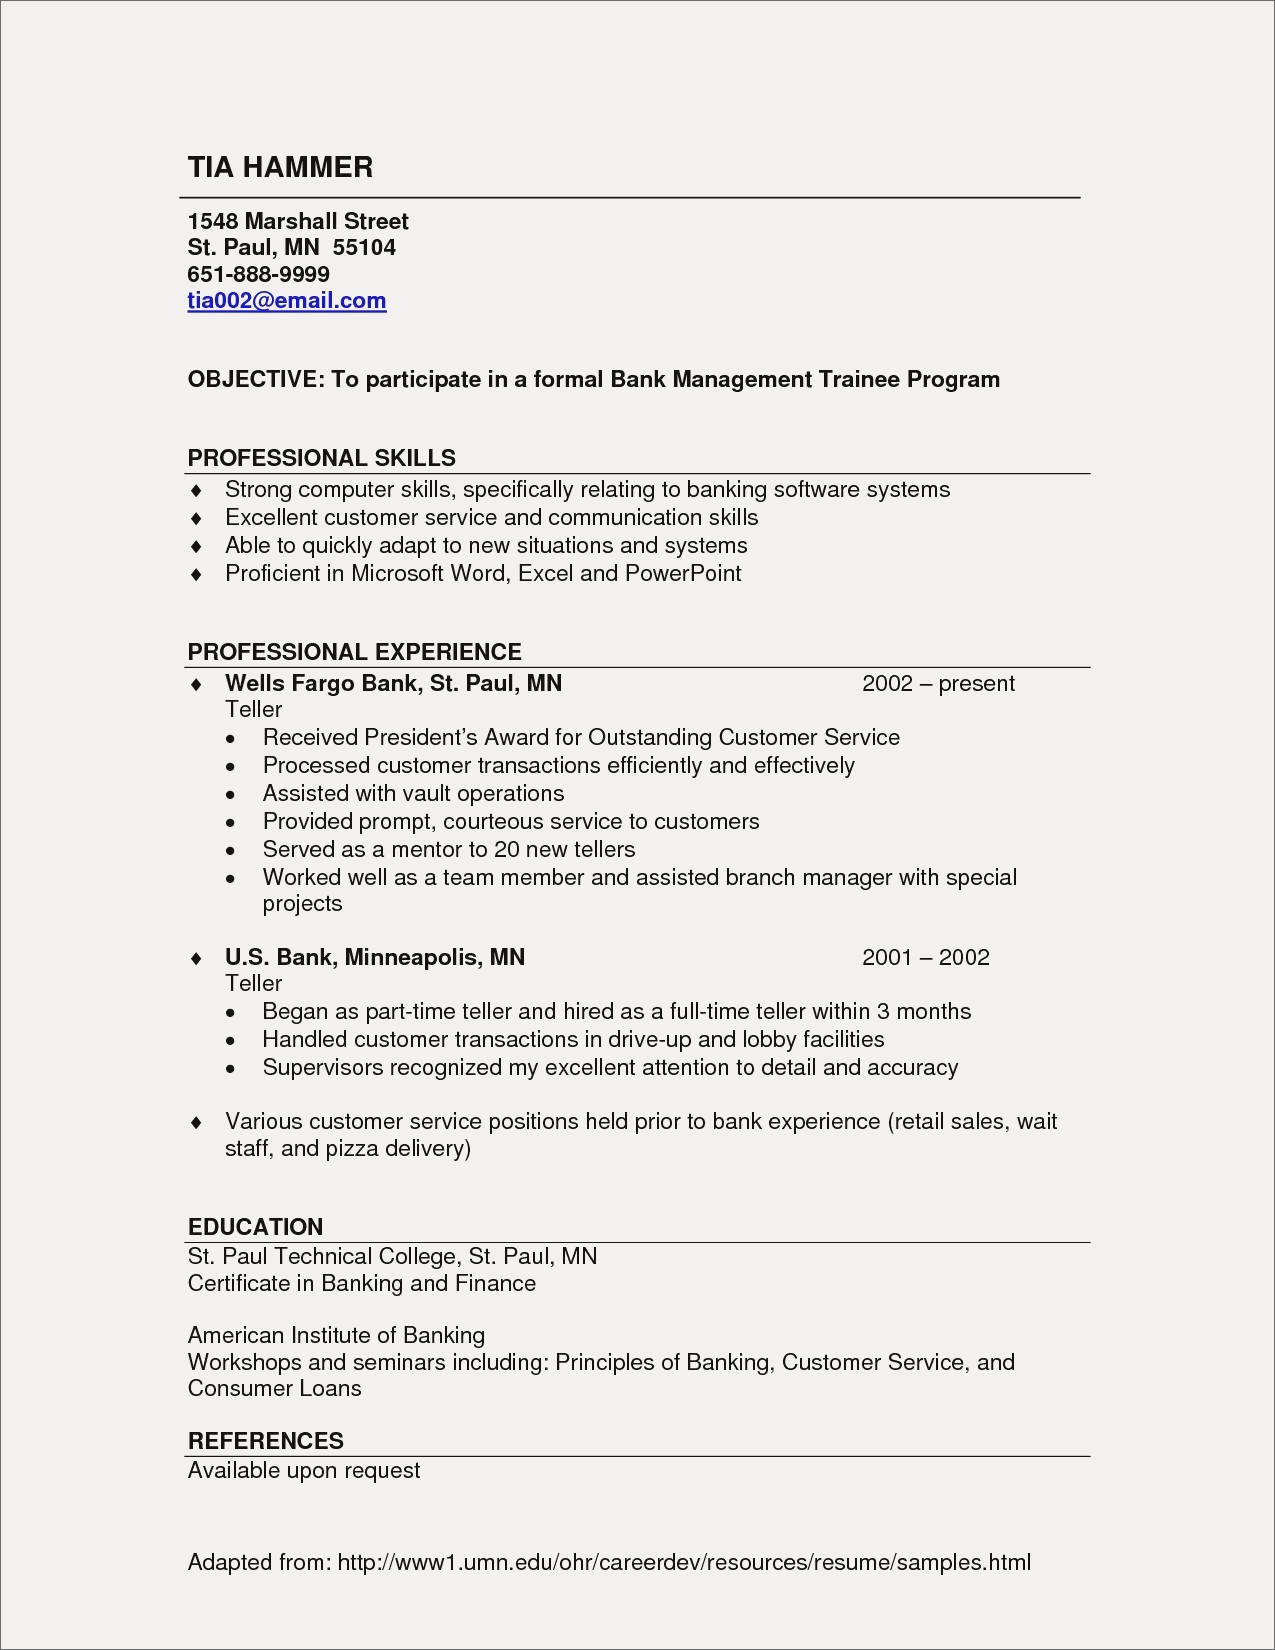 Tech Support Resume Template - Resume Templates for Customer Service Best Customer Service Resume